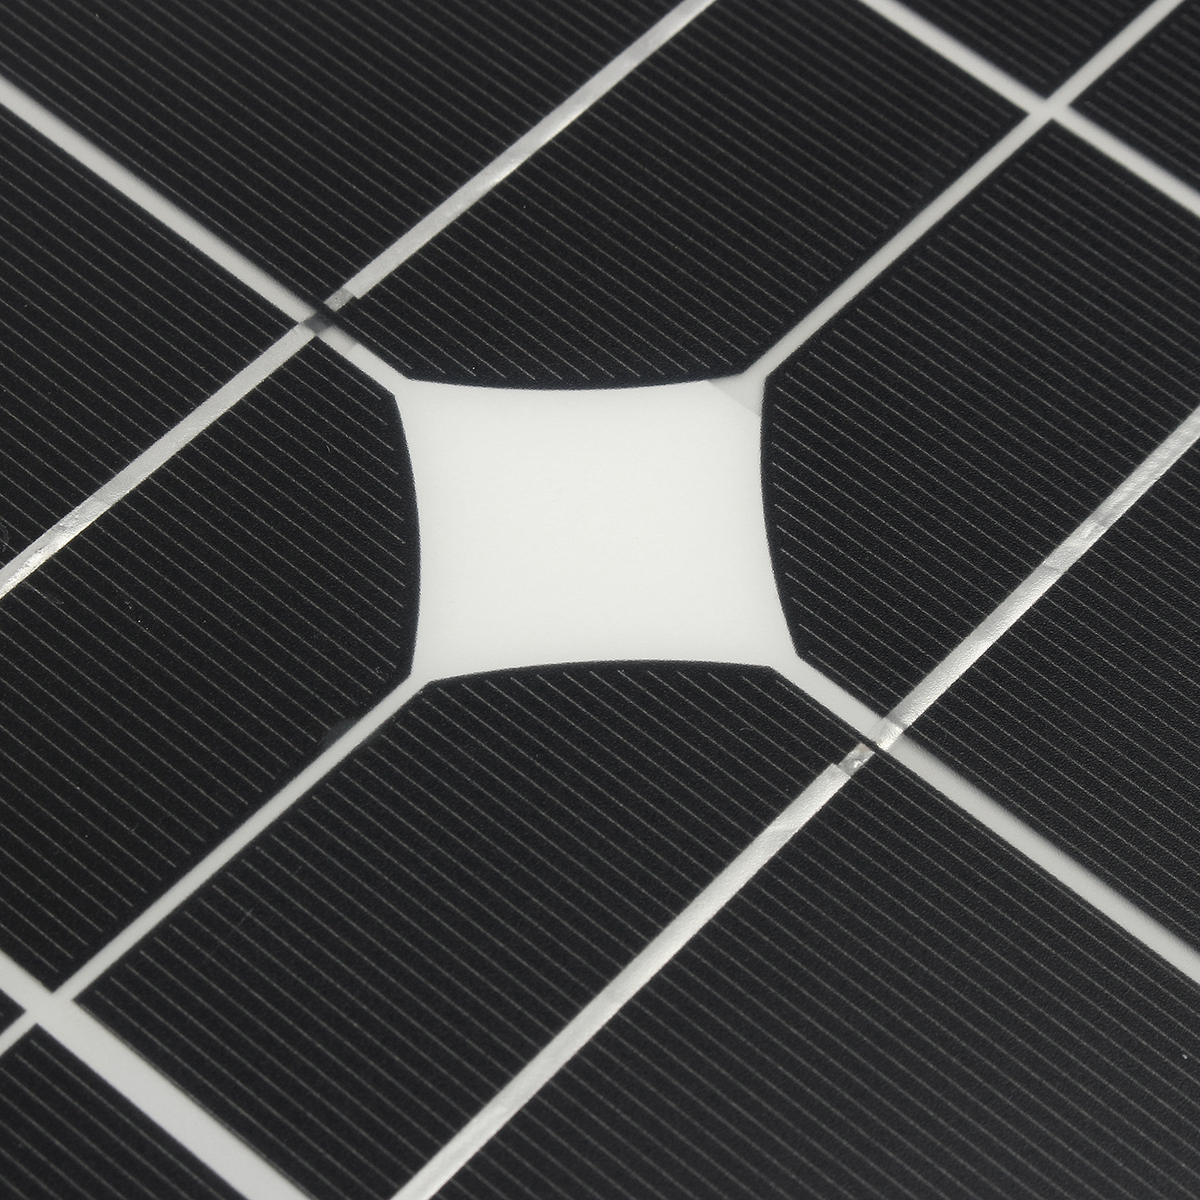 100W 5-18V USB Solar Panel Power Bank Charger For iPhone X 8 7 6 Tablets Laptop